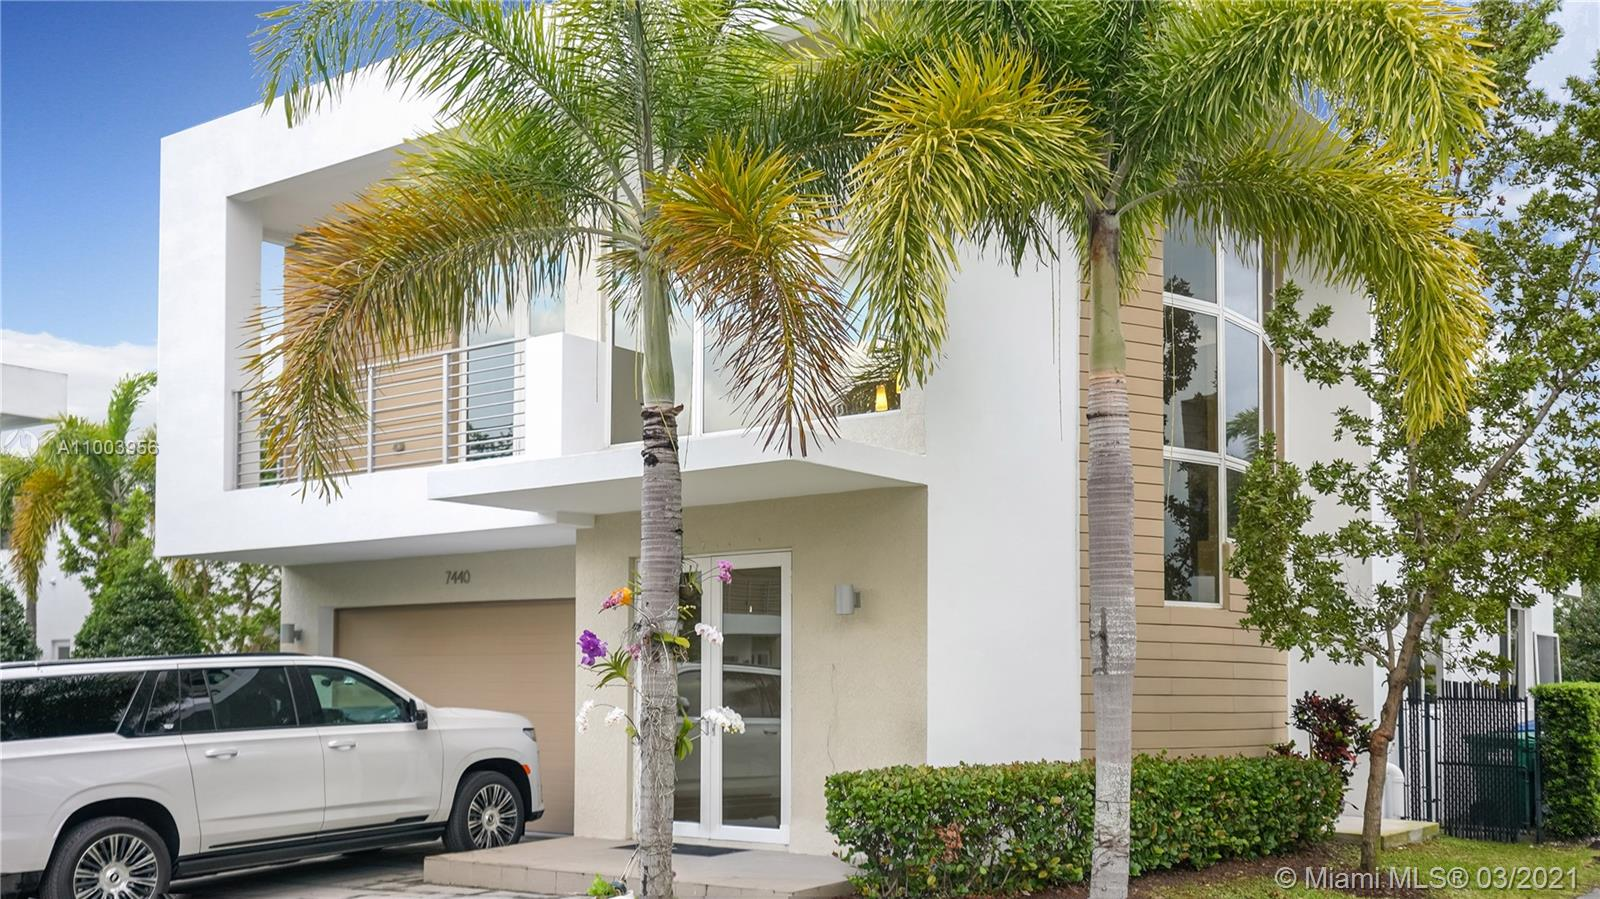 Doral Commons Residential - 7440 NW 98th Ct, Doral, FL 33178